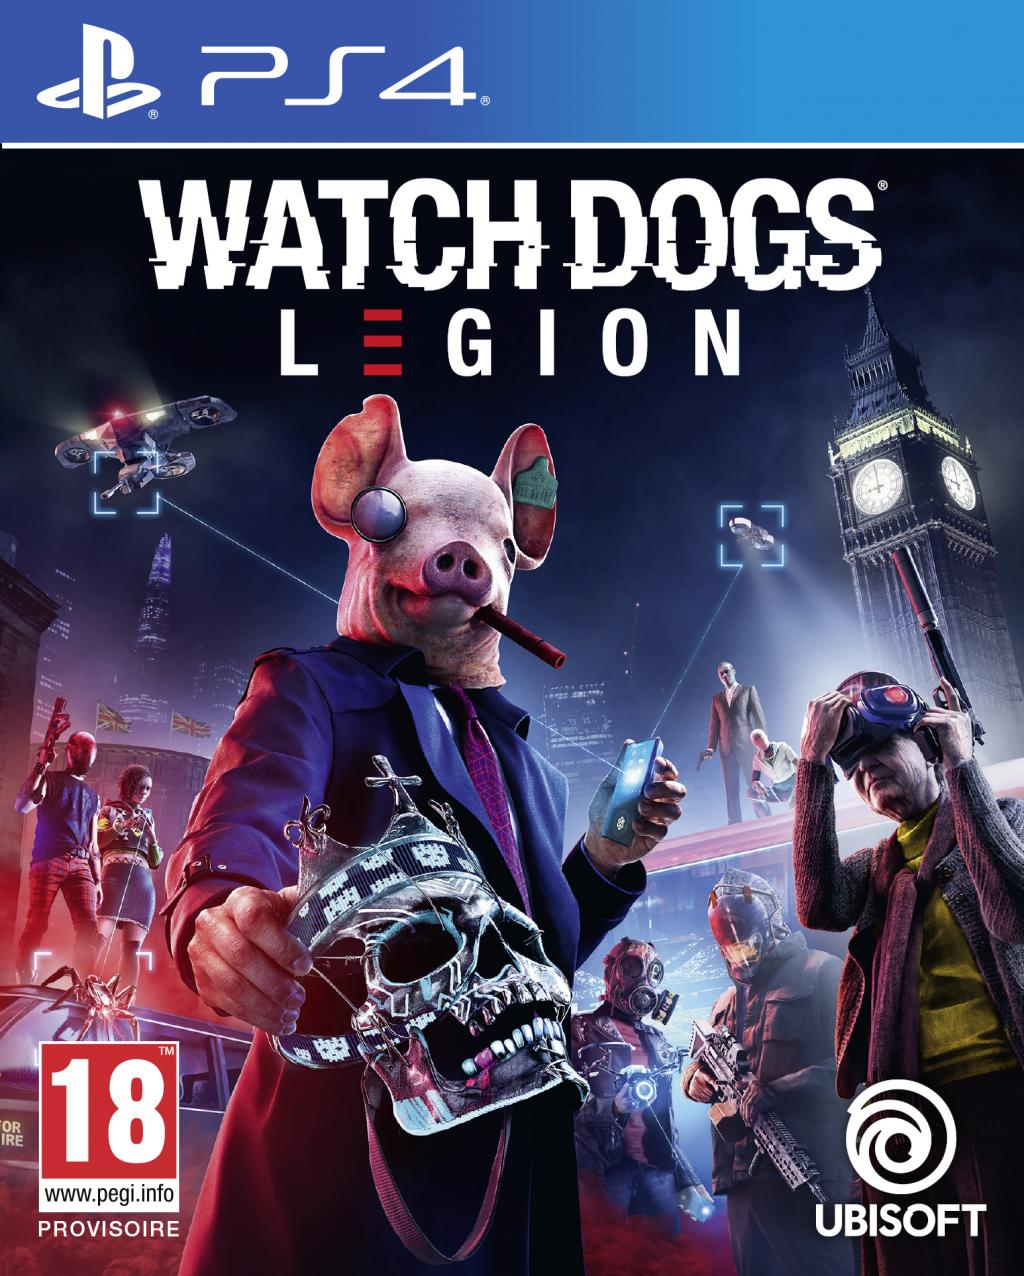 Watch Dogs Legion - UPGRADE PS5 free_2